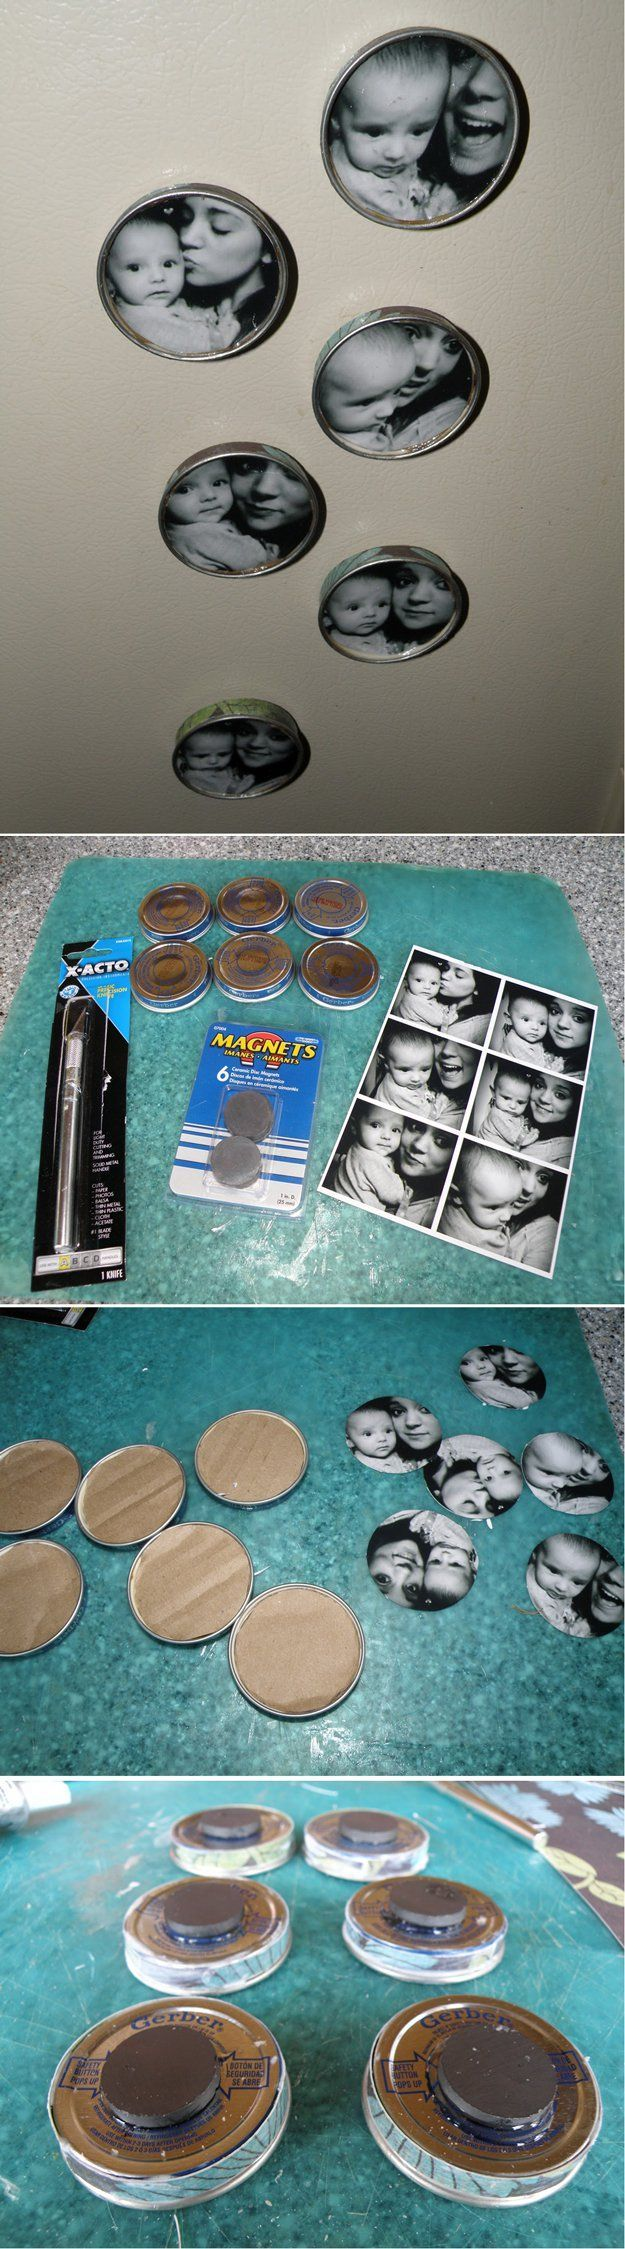 Picture Magnets - 23 Clever DIY Uses of Baby Food Jars | Upcycle And Repurpose Ideas at http://diyready.com/diy-uses-of-baby-food-jars/